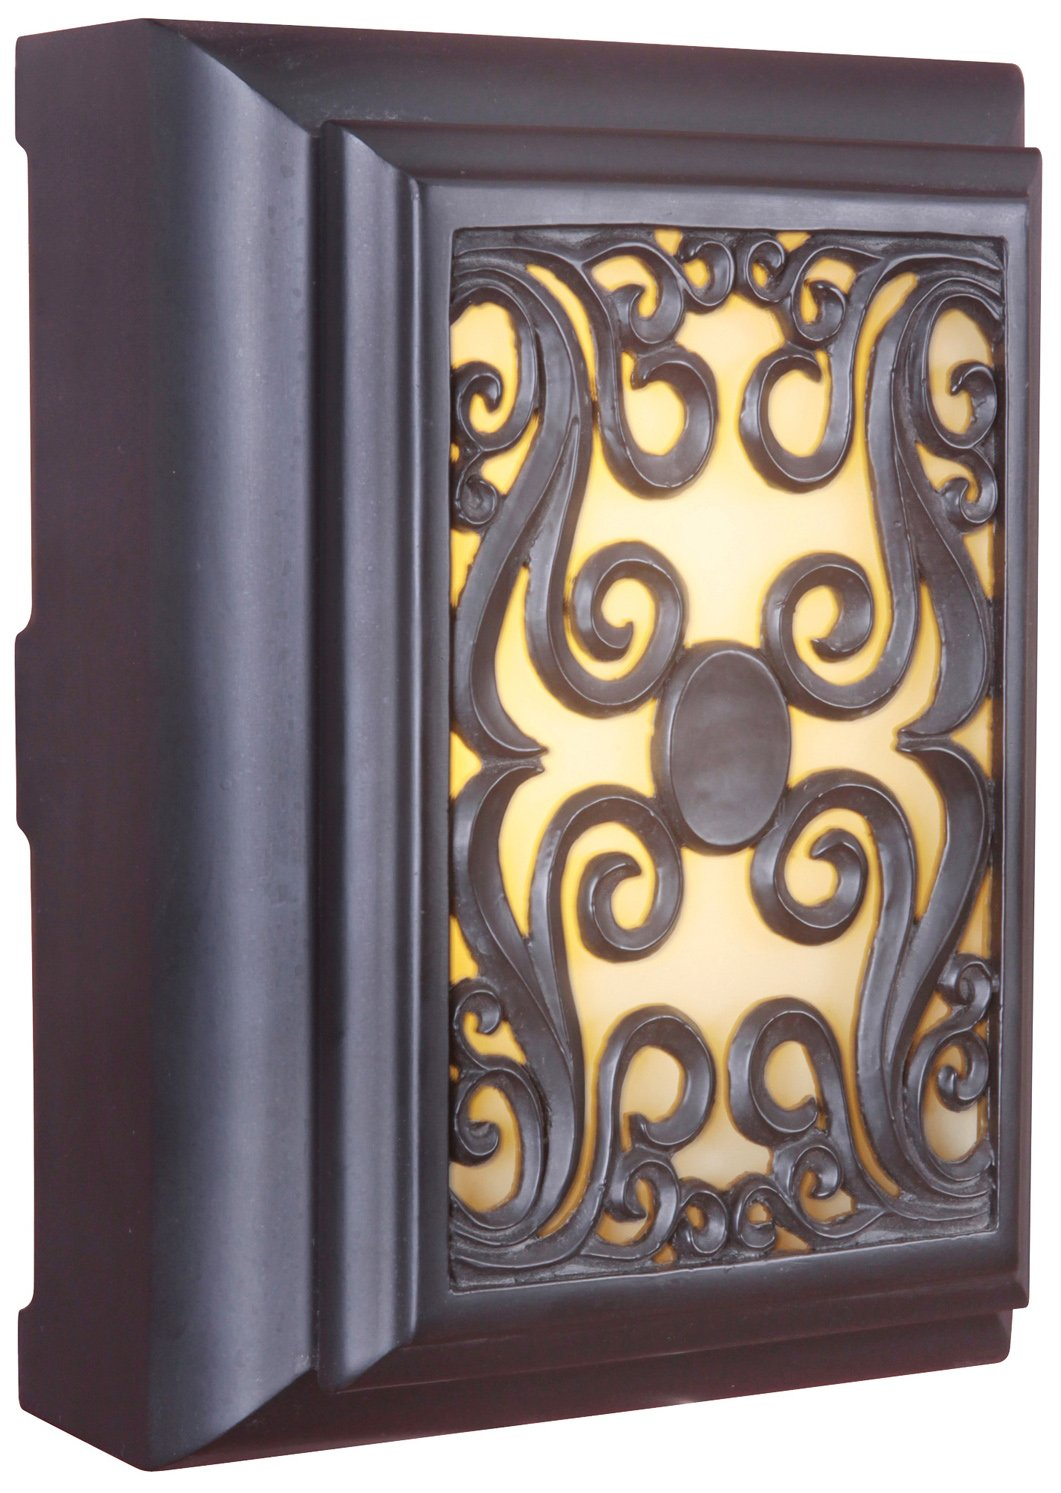 Craftmade ICH1630-OB Framed Scroll Lighted Chime by Teiber